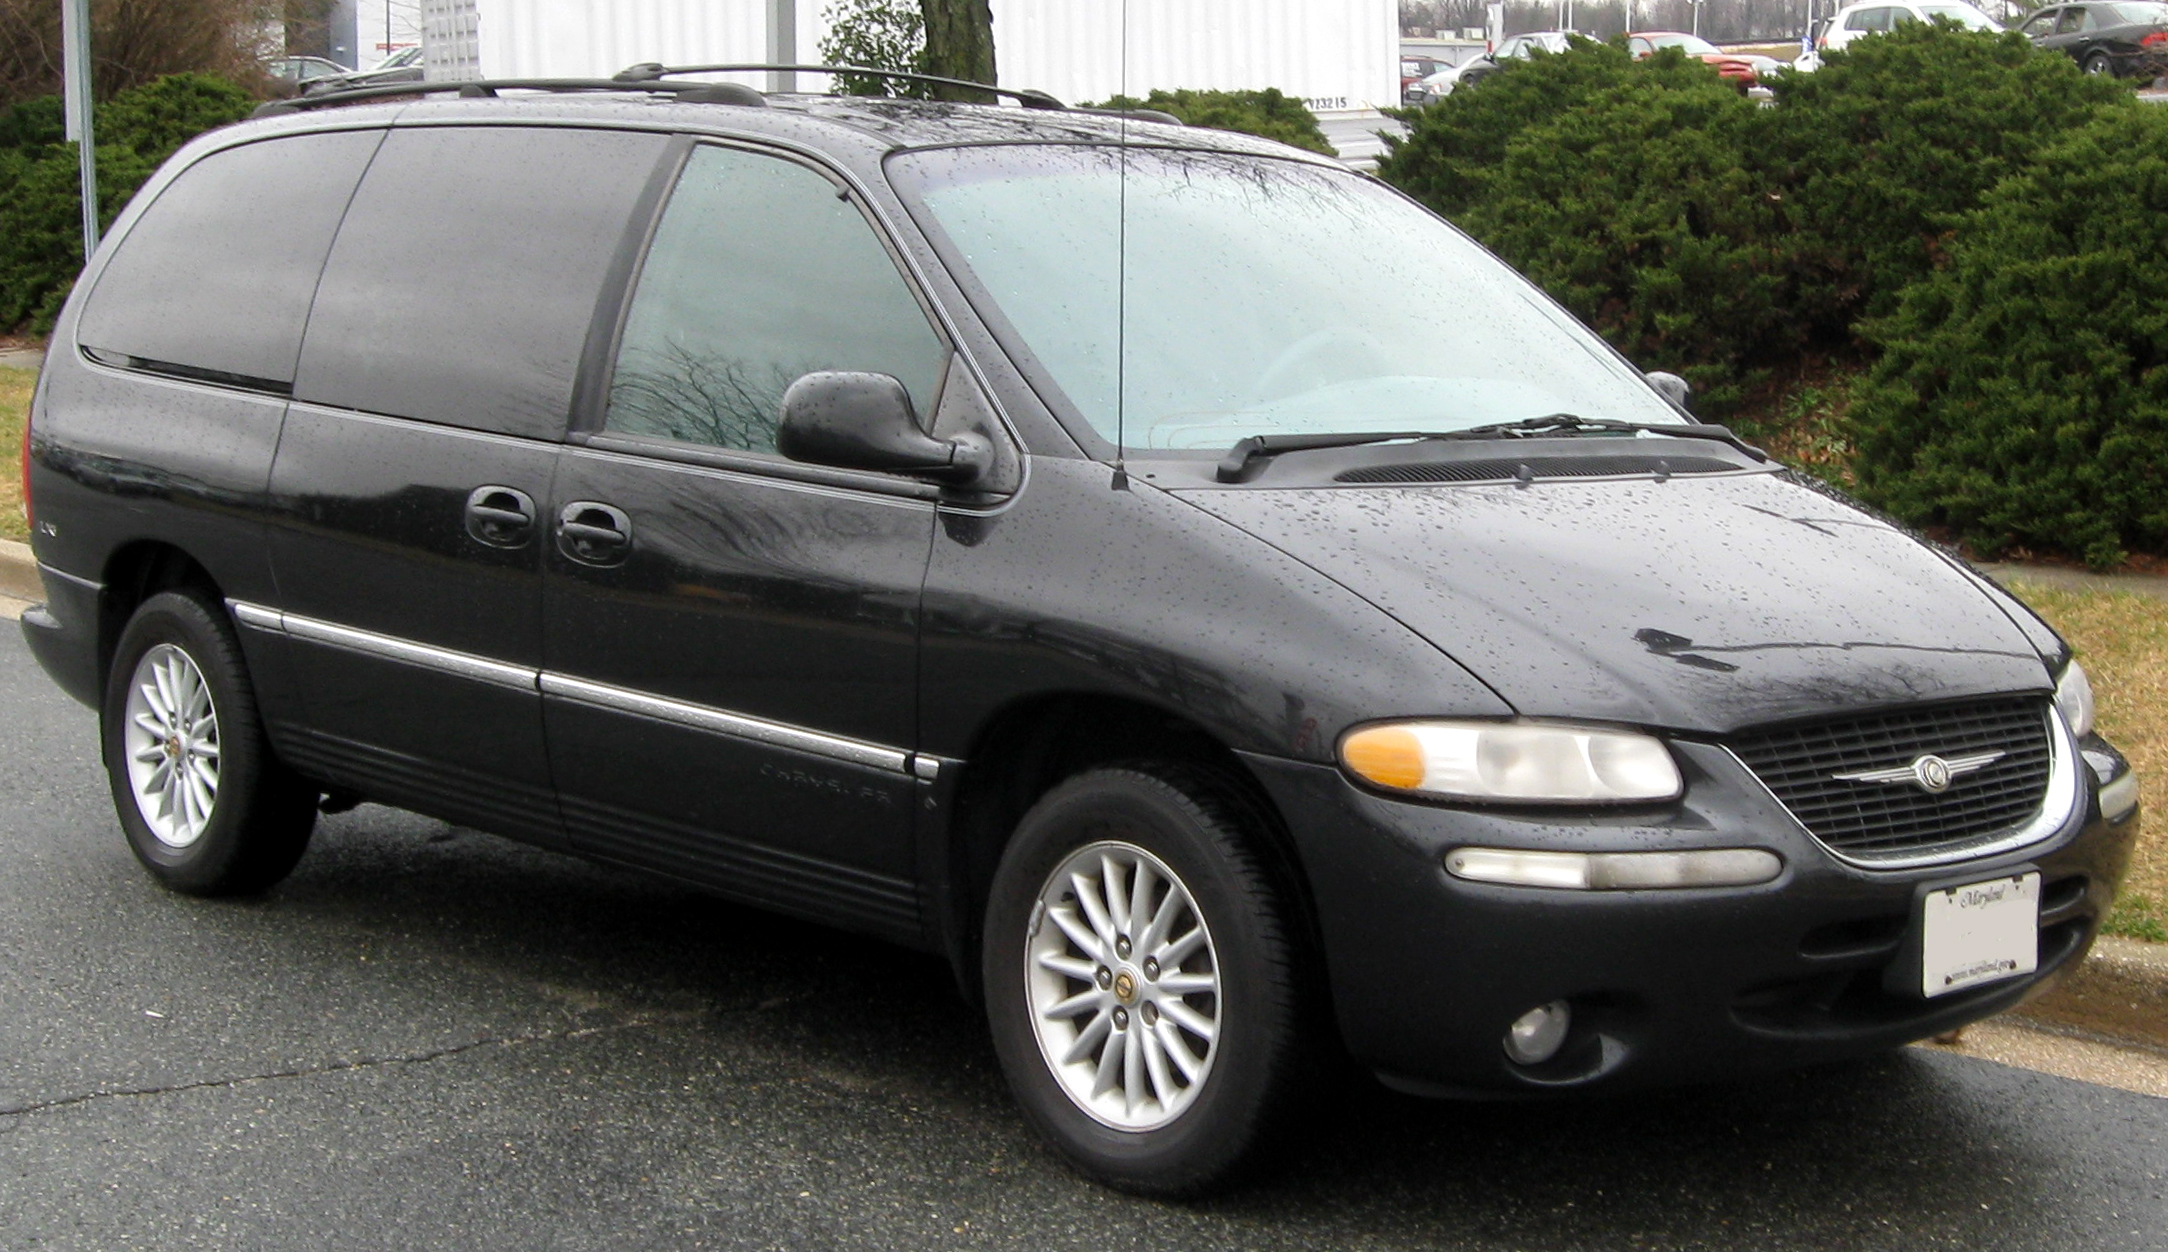 file 1998 2000 chrysler town country 02 29 2012 jpg wikimedia. Cars Review. Best American Auto & Cars Review